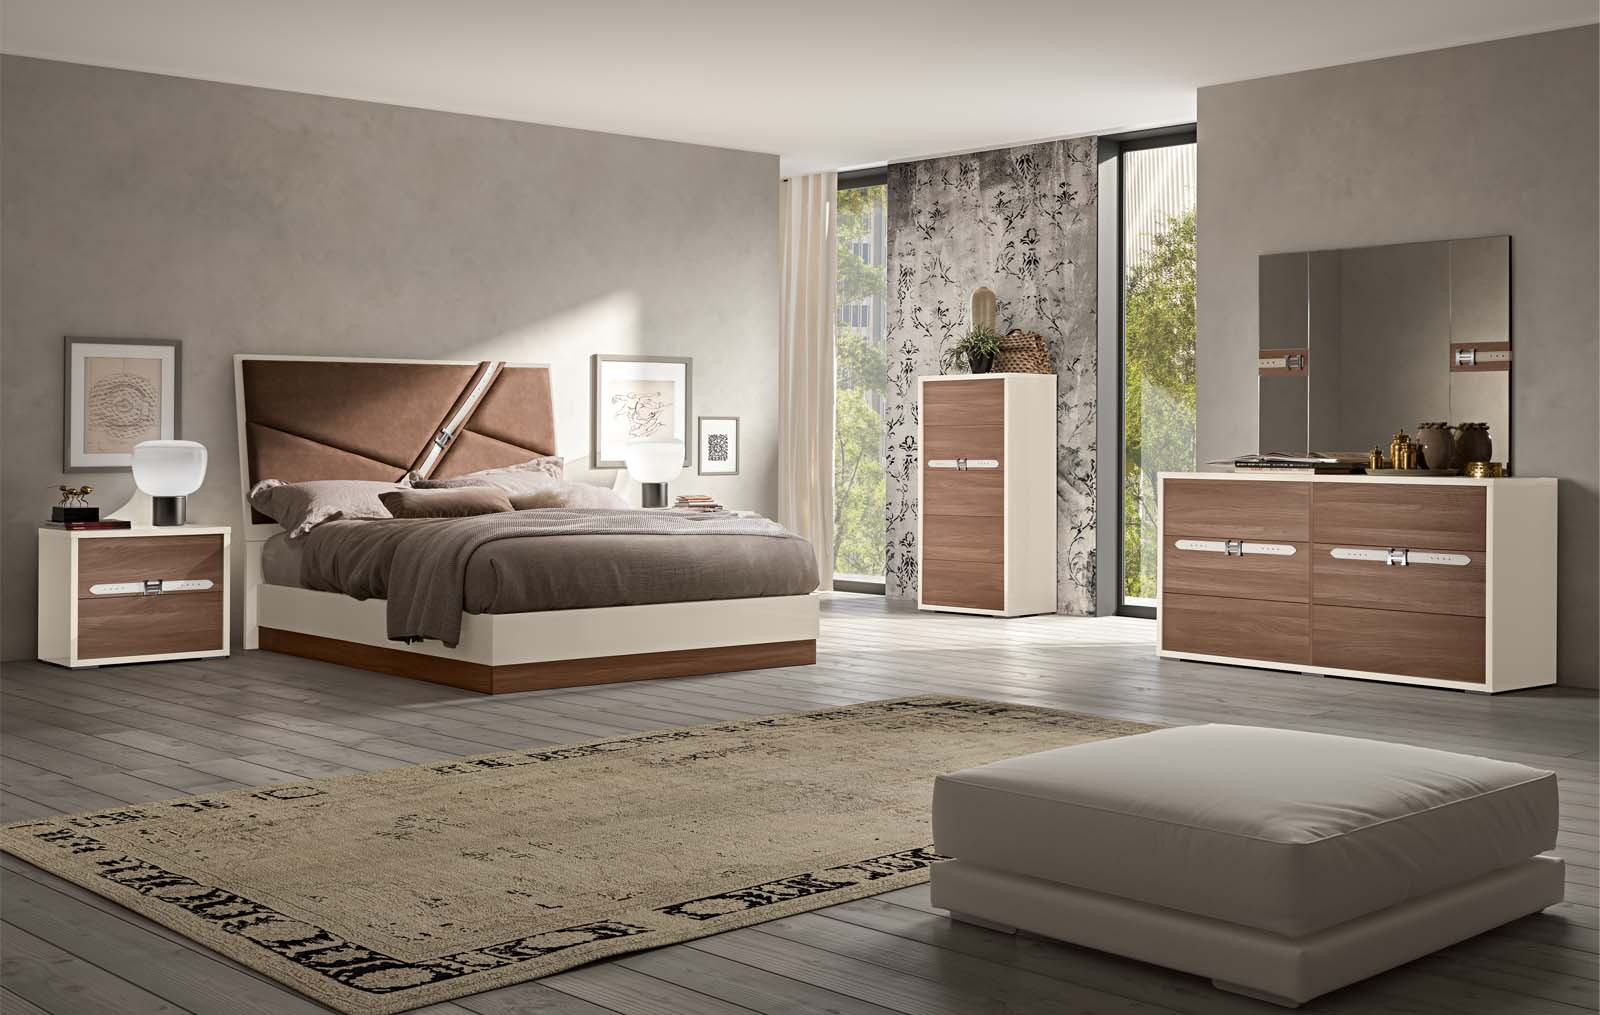 Best ideas about Modern Bedroom Furniture . Save or Pin Evolution Bedroom Modern Bedrooms Bedroom Furniture Now.